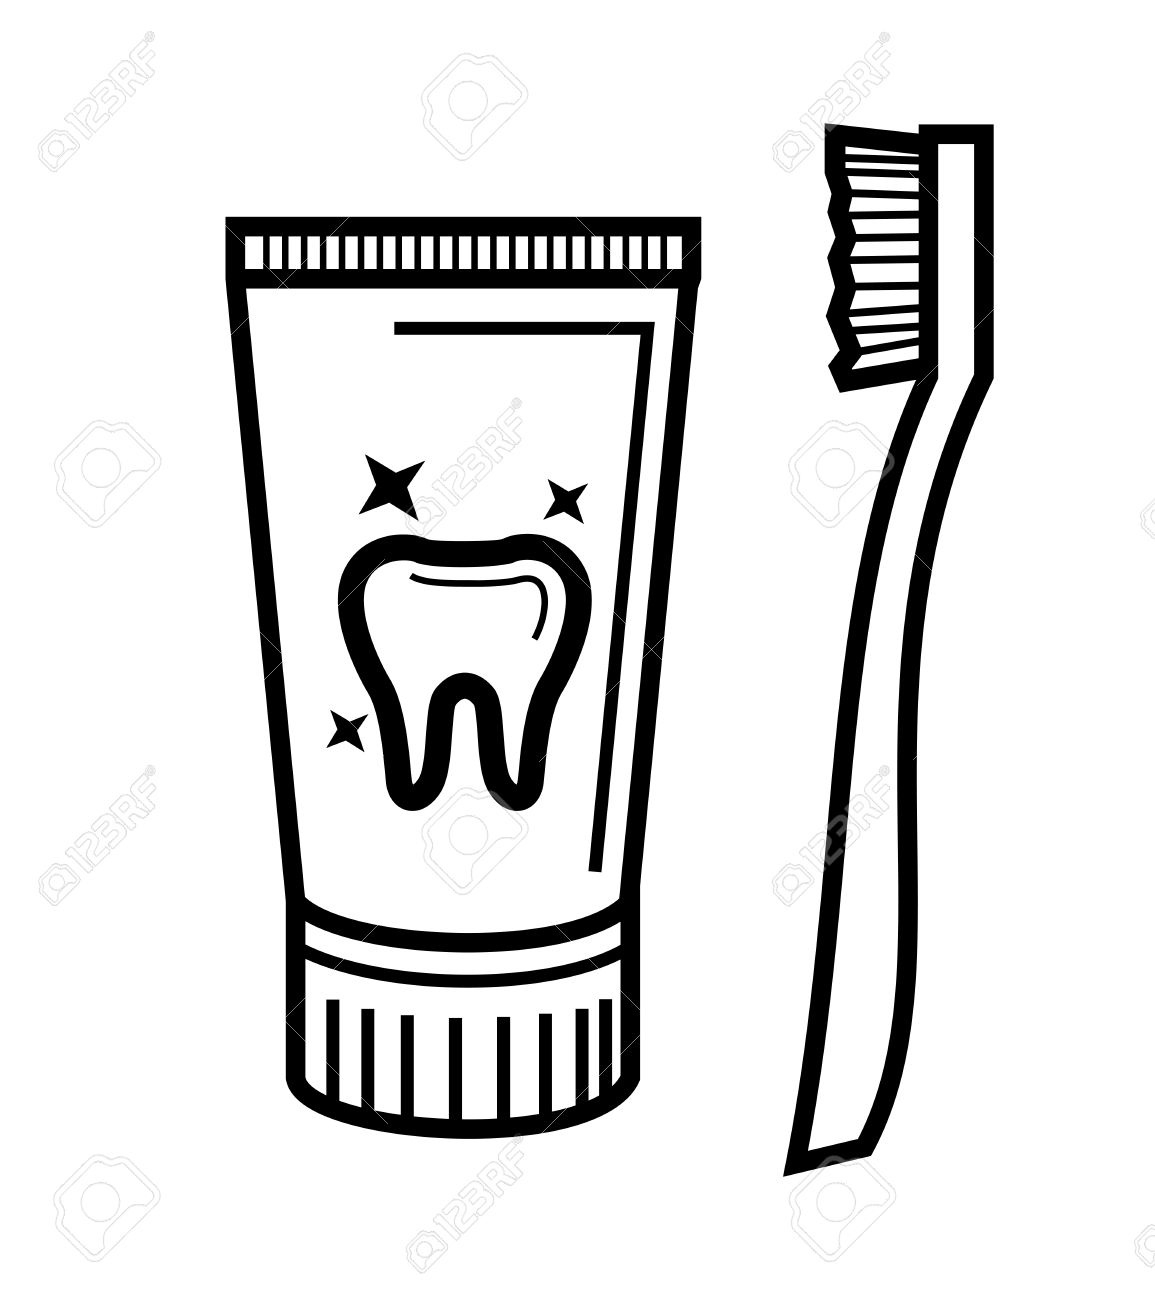 Toothpaste clipart simple. Bright inspiration toothbrush with